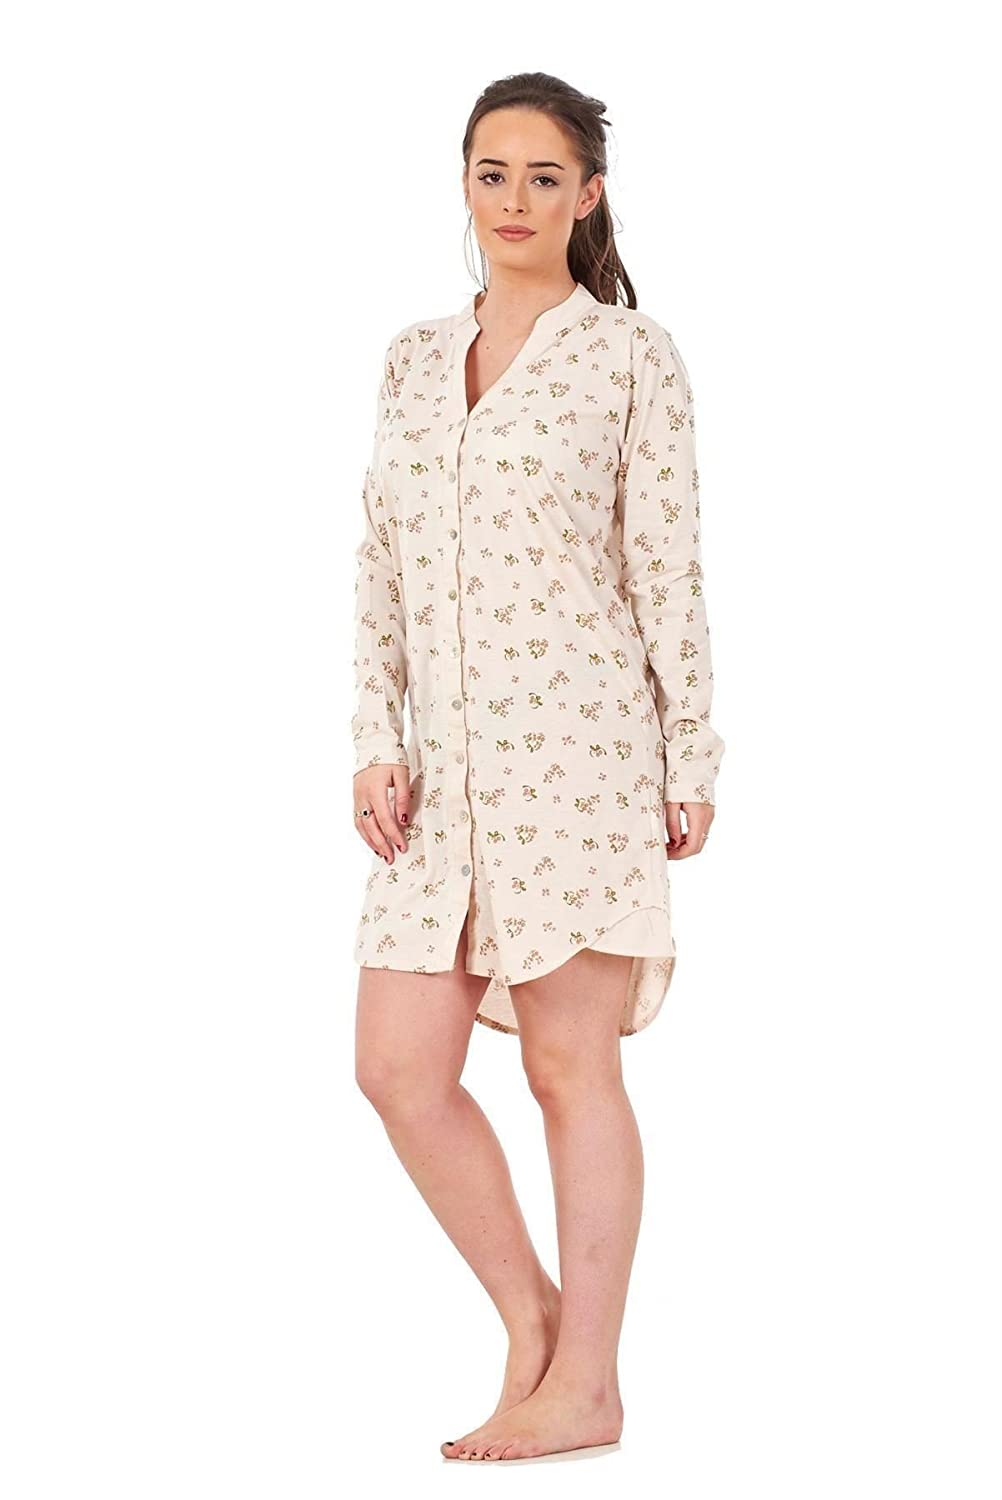 Bay eCom UK New Ladies Women's Nightwear Shirt Buttons Floral Print Long Sleeve Top Nightie M-2XL Does not Apply